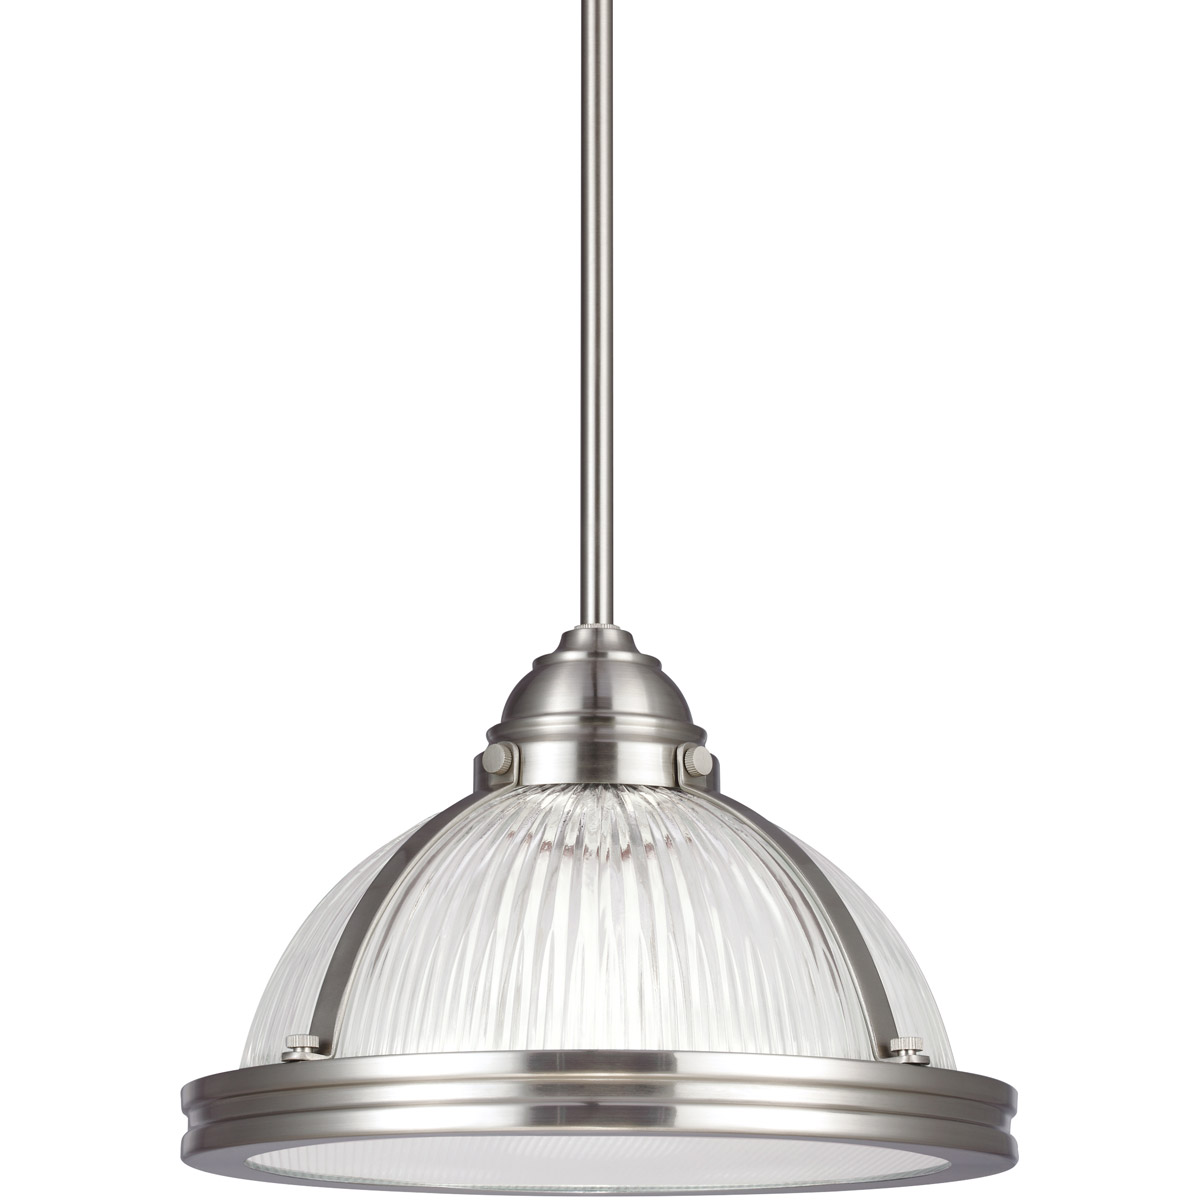 Sea Gull 65060-962 Pratt Street Prismatic 1 Light 11 inch Brushed Nickel Pendant Ceiling Light in Standard photo